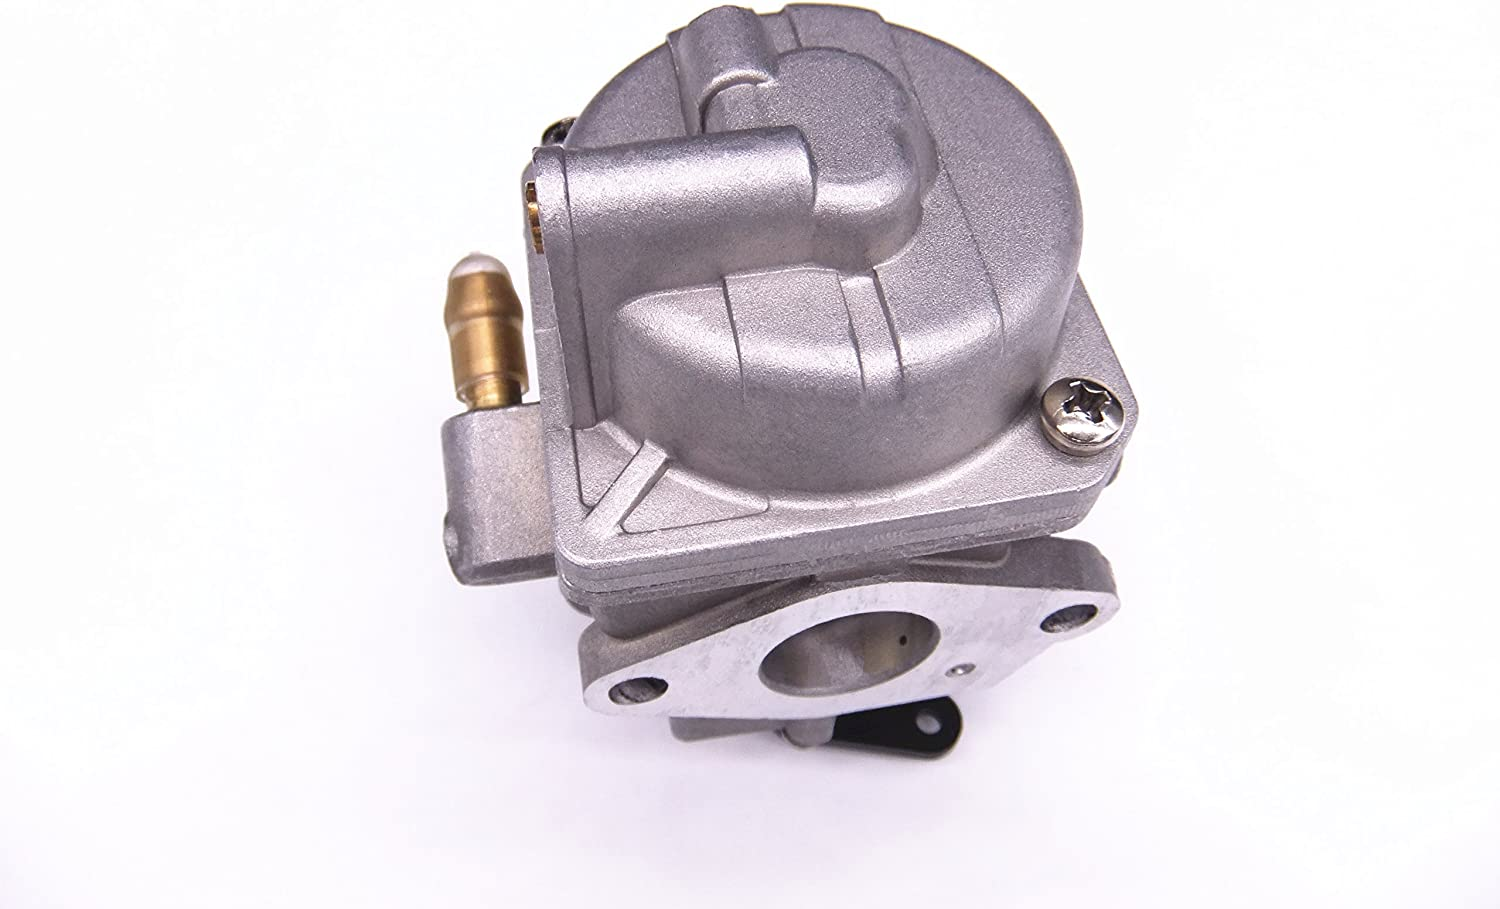 Boat Motor Carburetor 3R1-03200-1 3R1-03200-1-00 3AS-03200-0 for Tohatsu Nissan 4hp 5hp MFS4A MFS5 NFS4 NSF5/803522T Mercury 4hp 5hp 4T 4-Stroke Outboard Engine